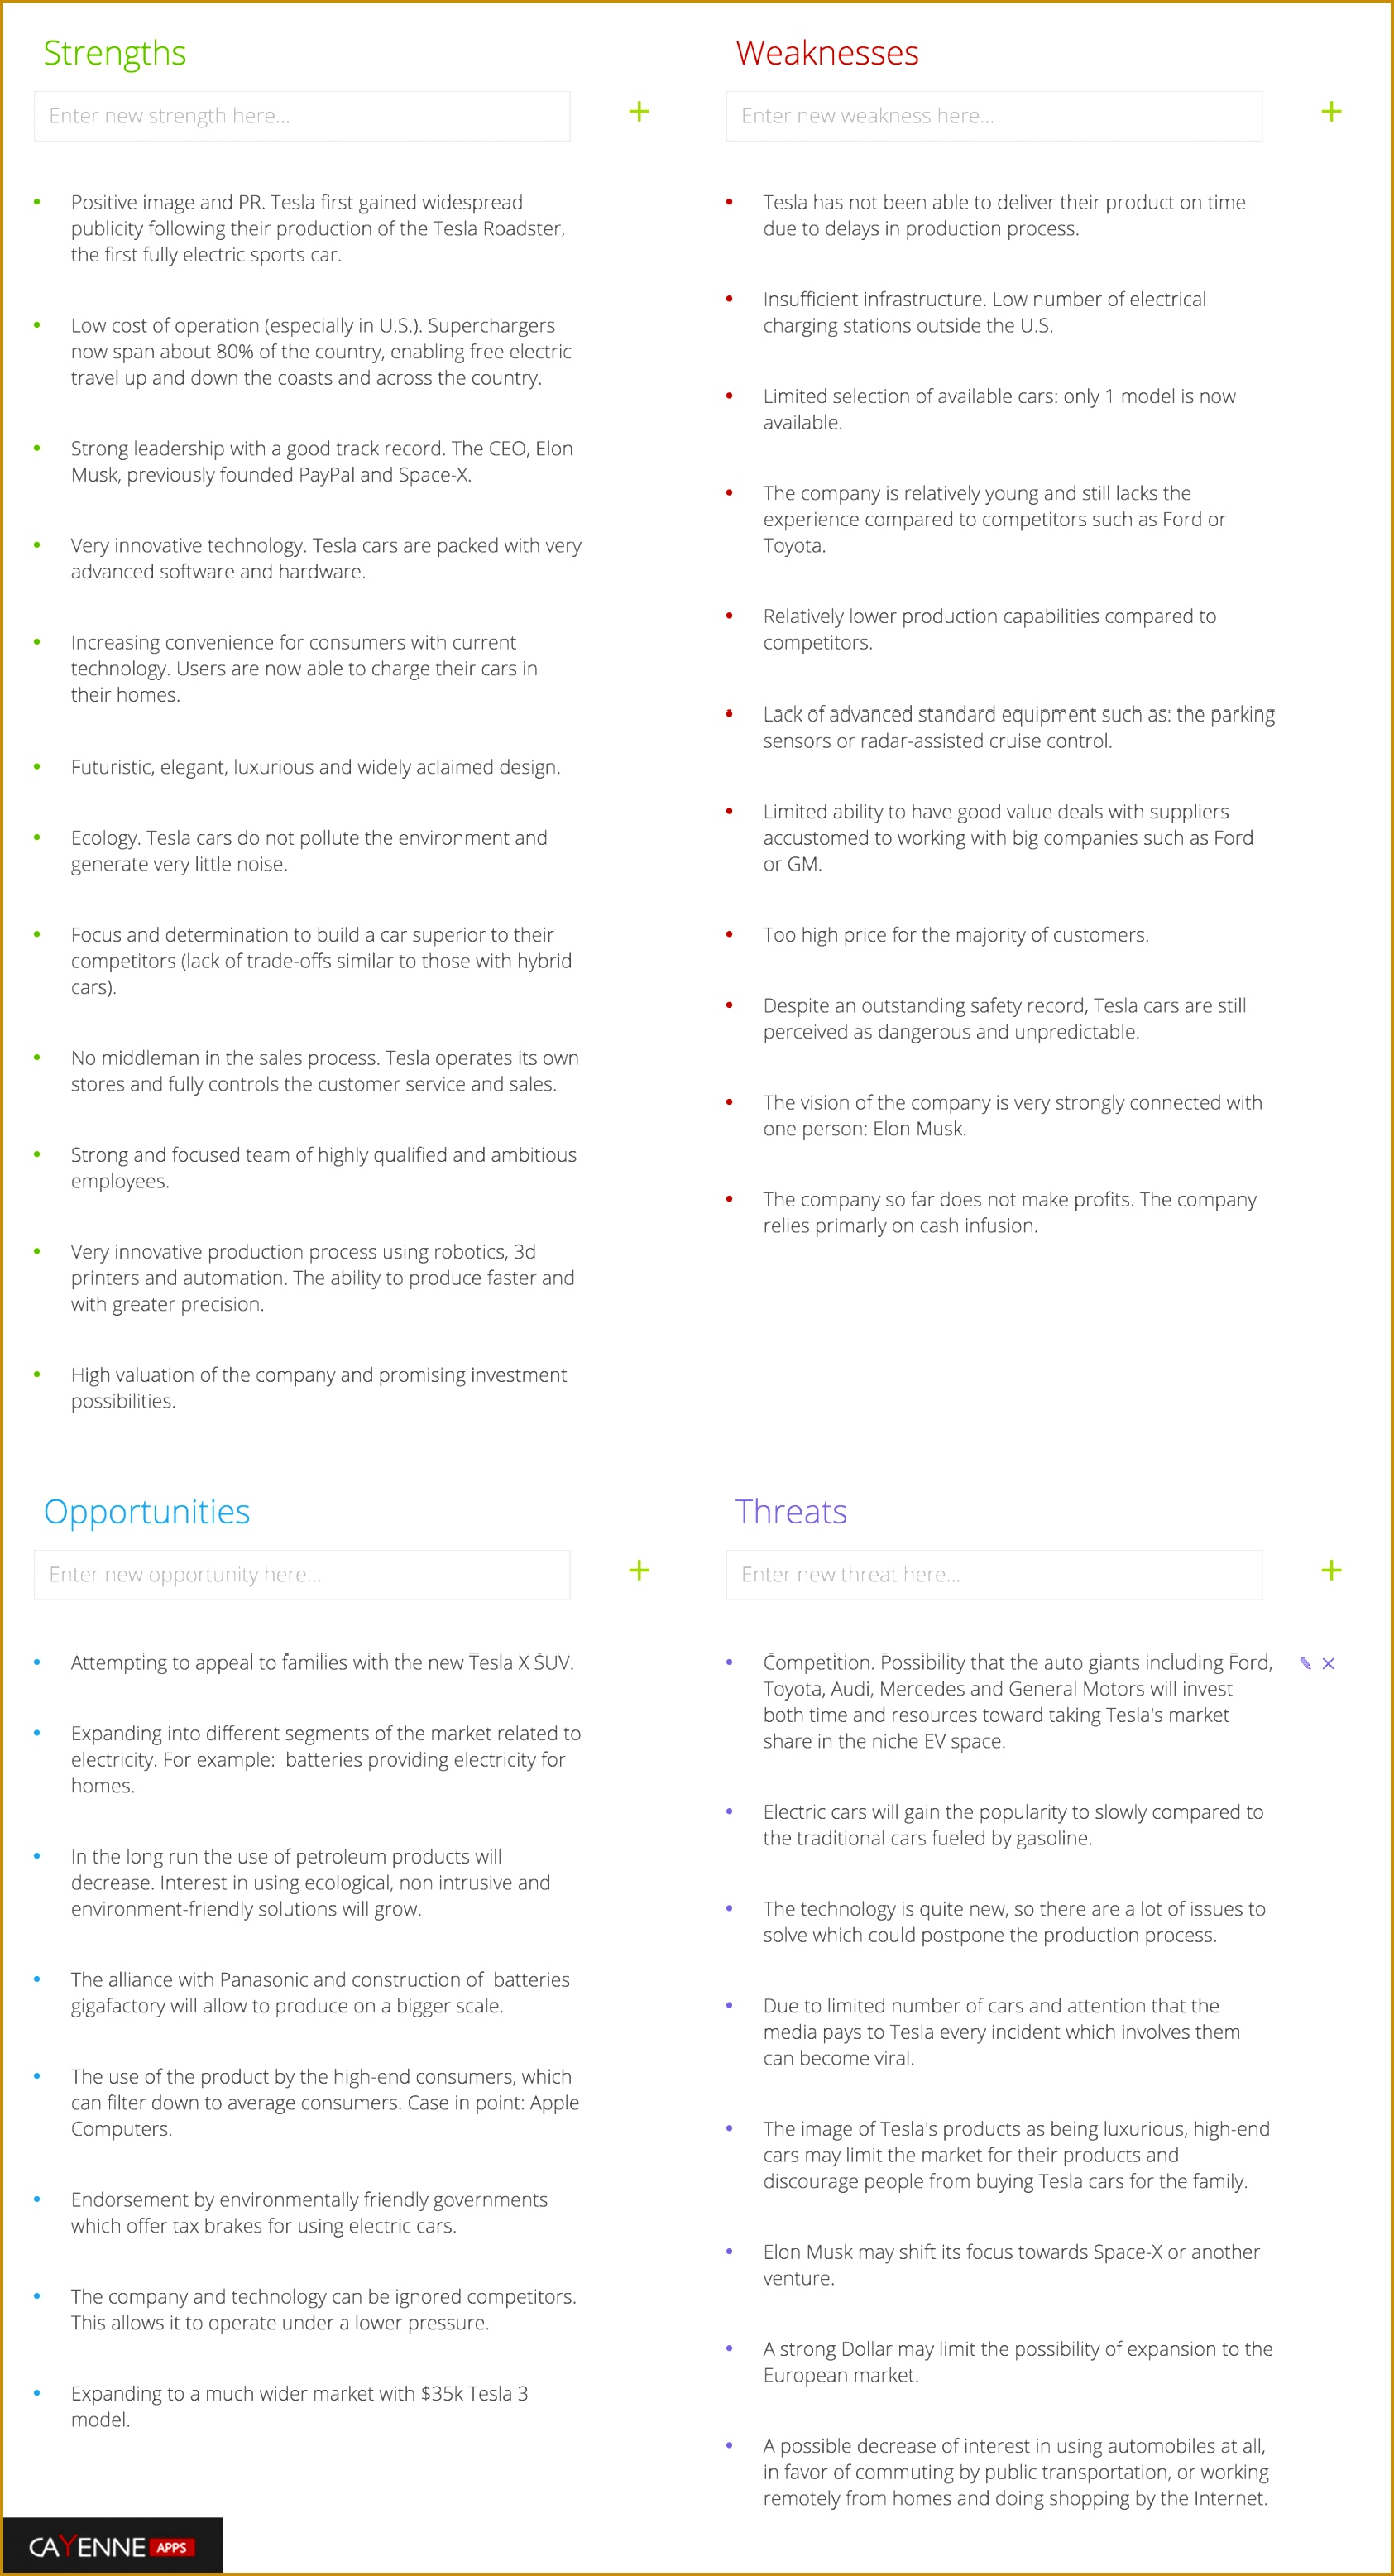 Swot Report Template personal weakness examples swot Swot Report Template personal weakness examples swot 16853113